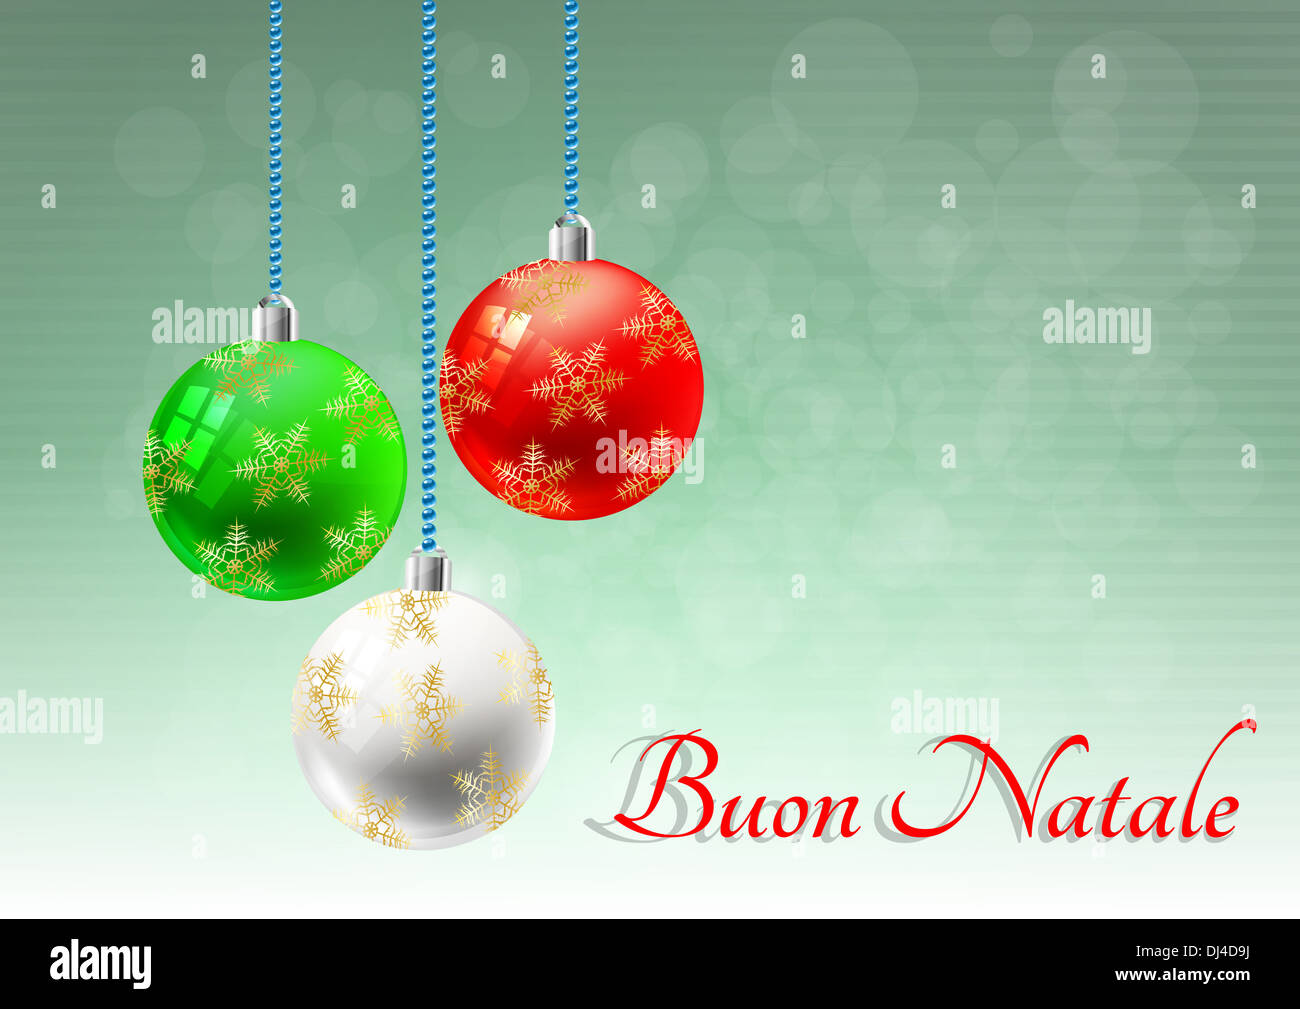 Merry Christmas In Italian.Illustration Of Christmas Balls With Merry Christmas In